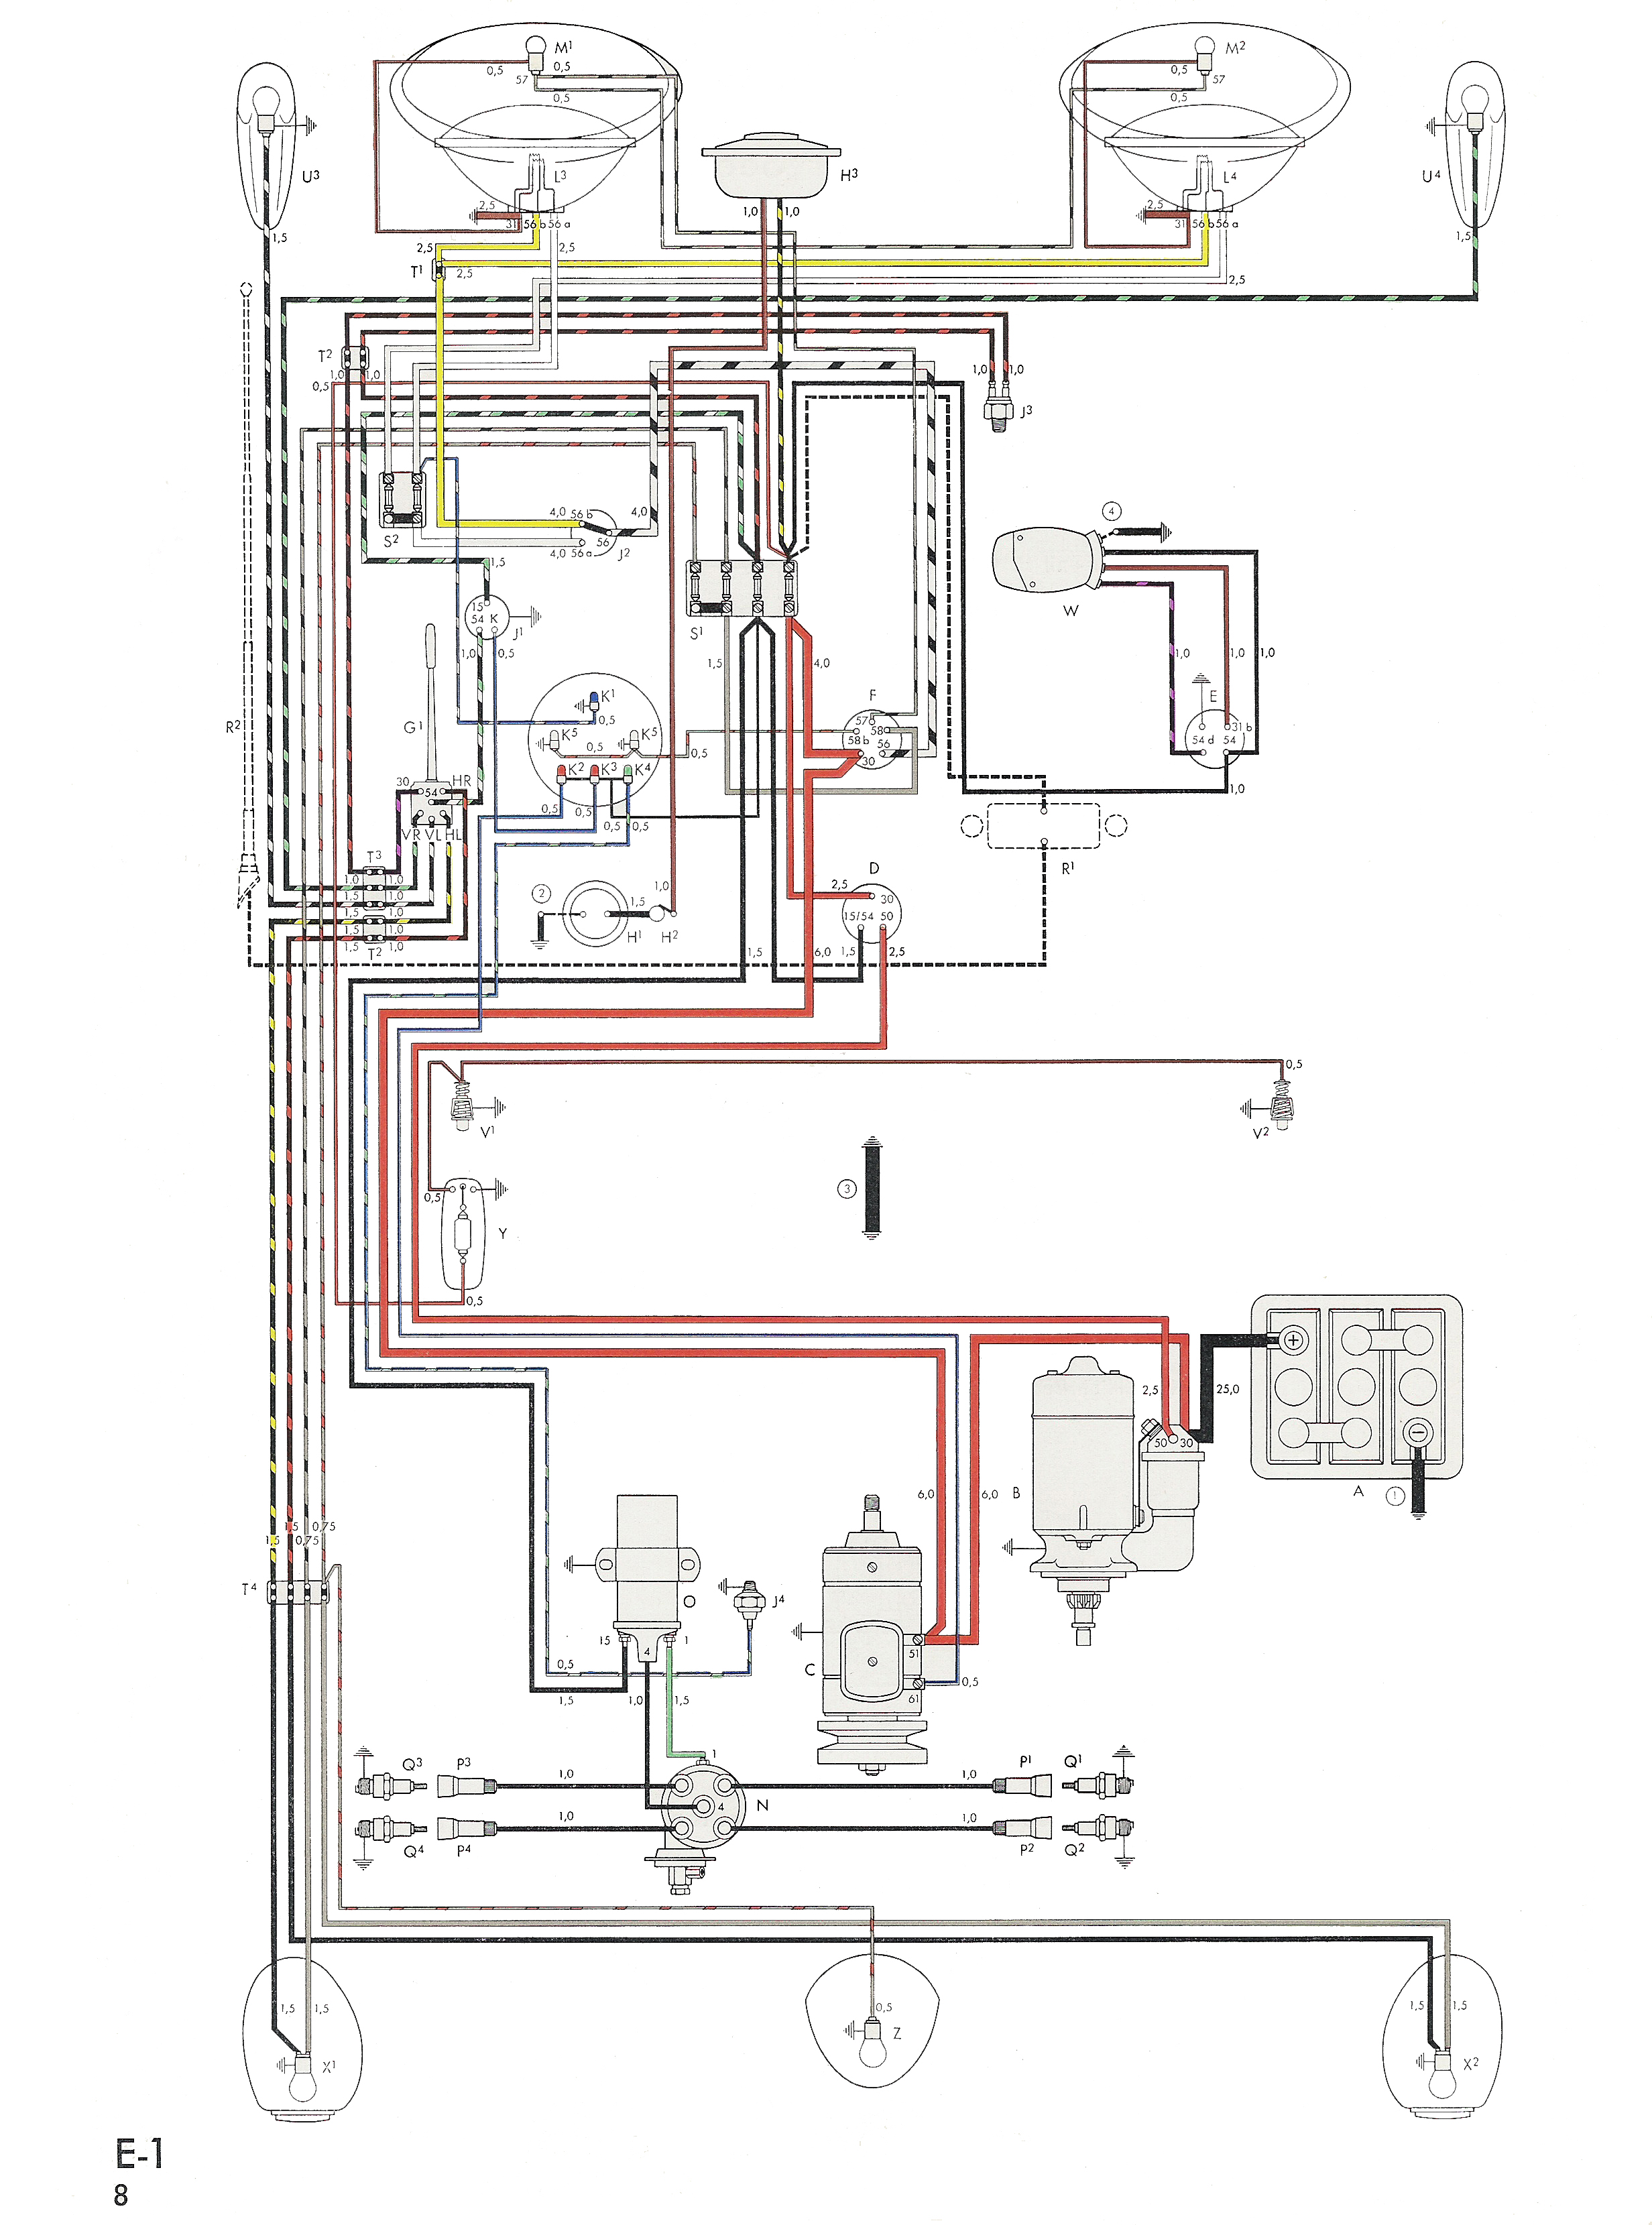 bug_58_USA_300dpi thesamba com type 1 wiring diagrams find wiring diagram for 87 ford f 150 at metegol.co